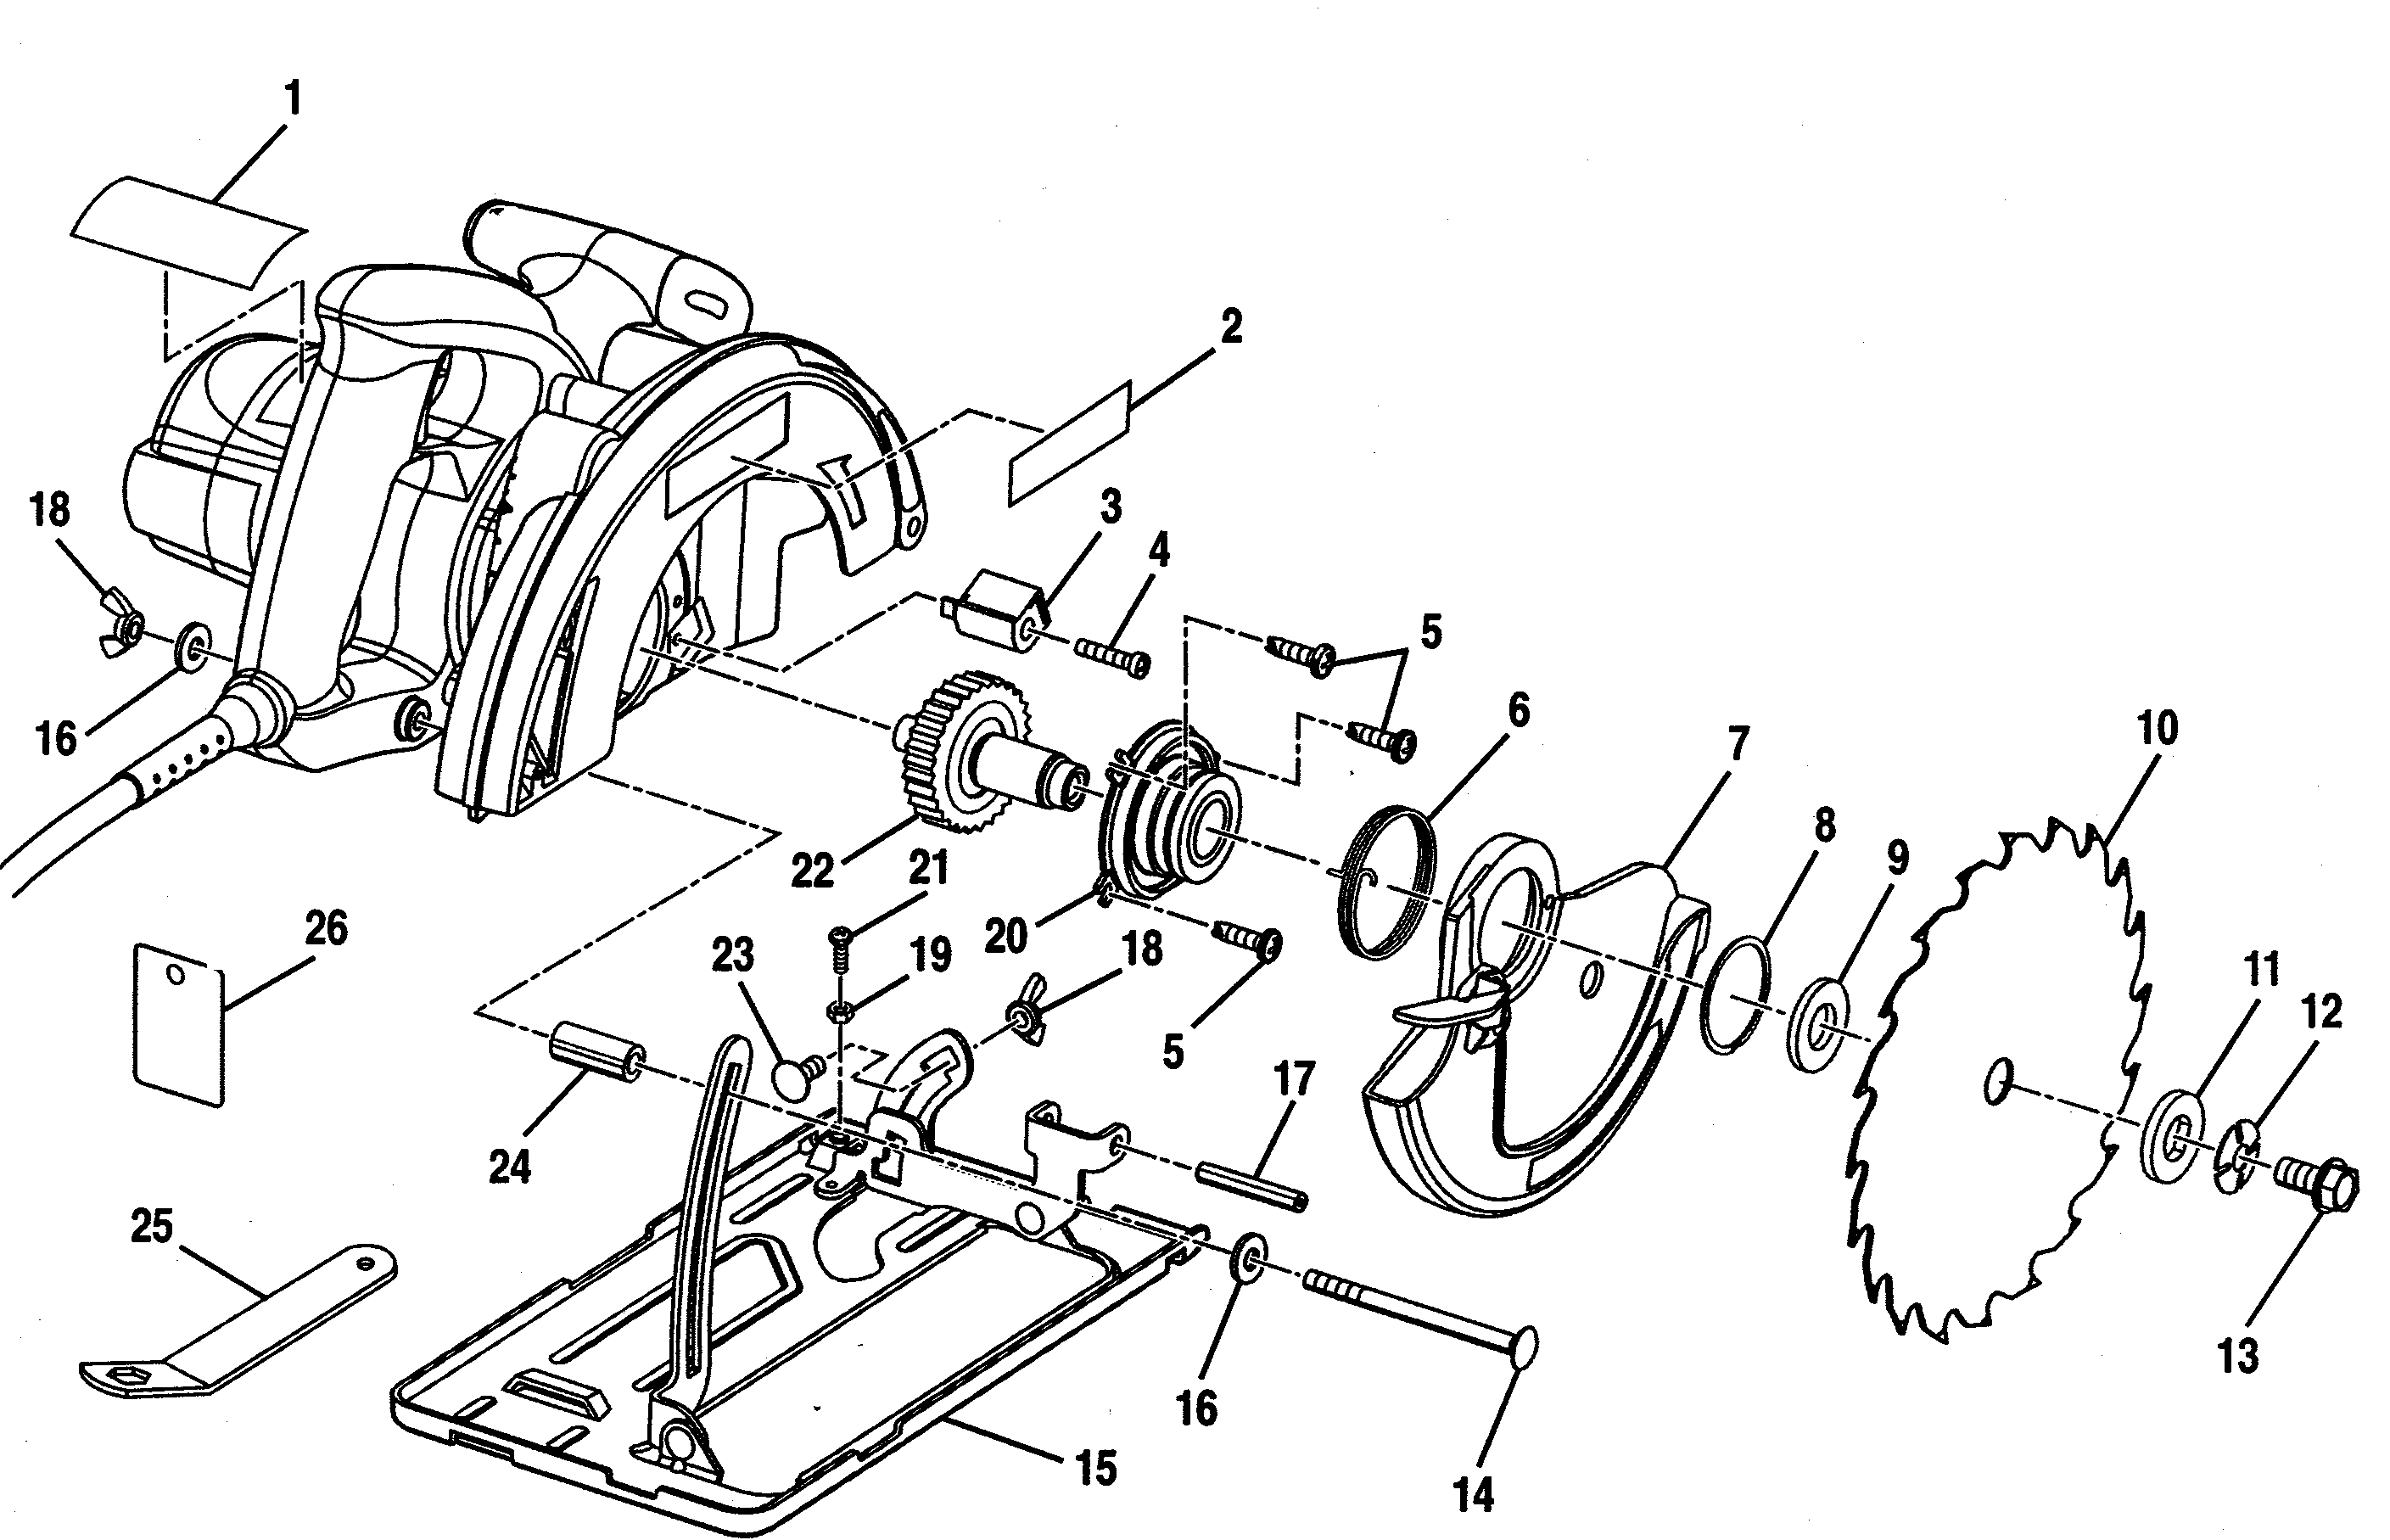 Wiring Diagram For Craftsman Circular Saw